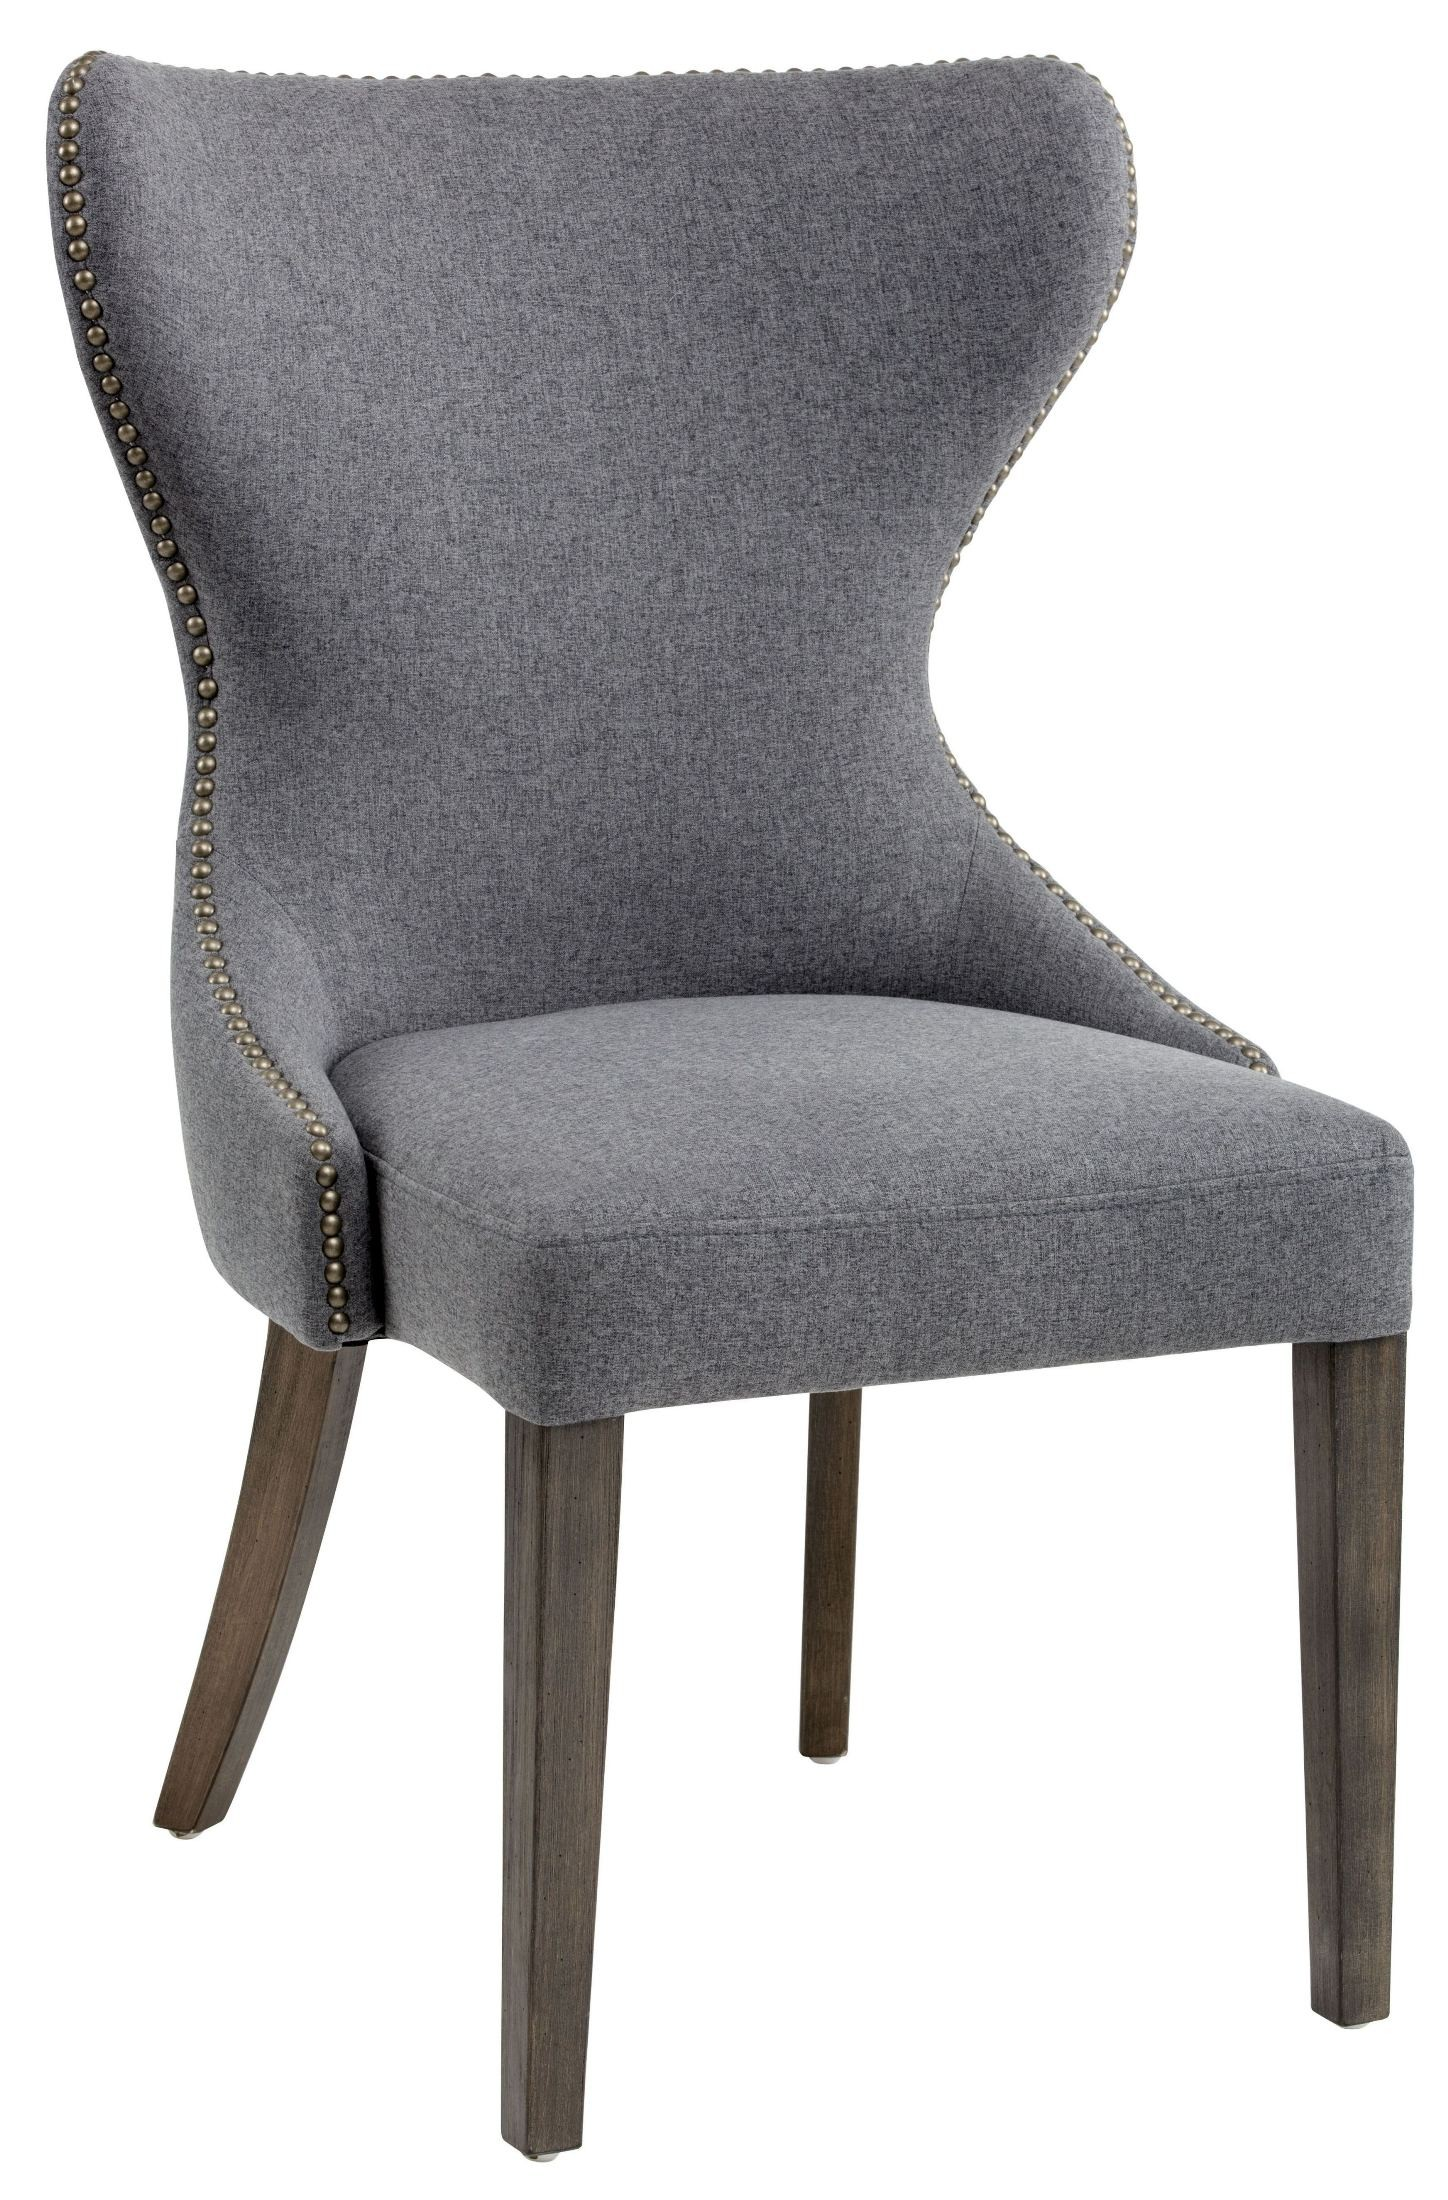 Ariana Dark Grey Fabric Dining Chair from Sunpan